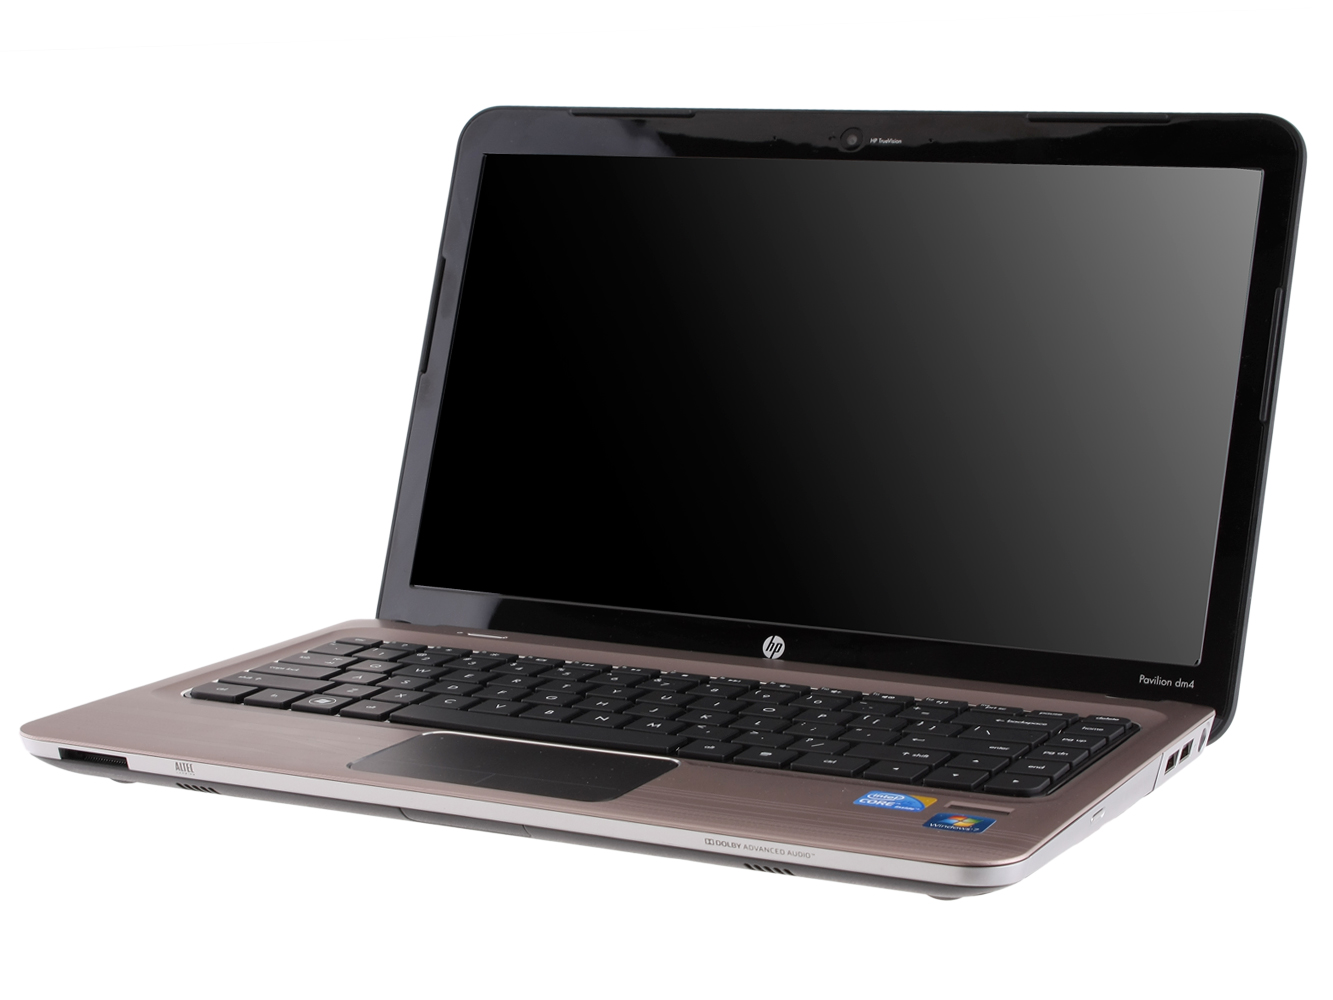 hp pavilion dm4 review features and price top laptop. Black Bedroom Furniture Sets. Home Design Ideas